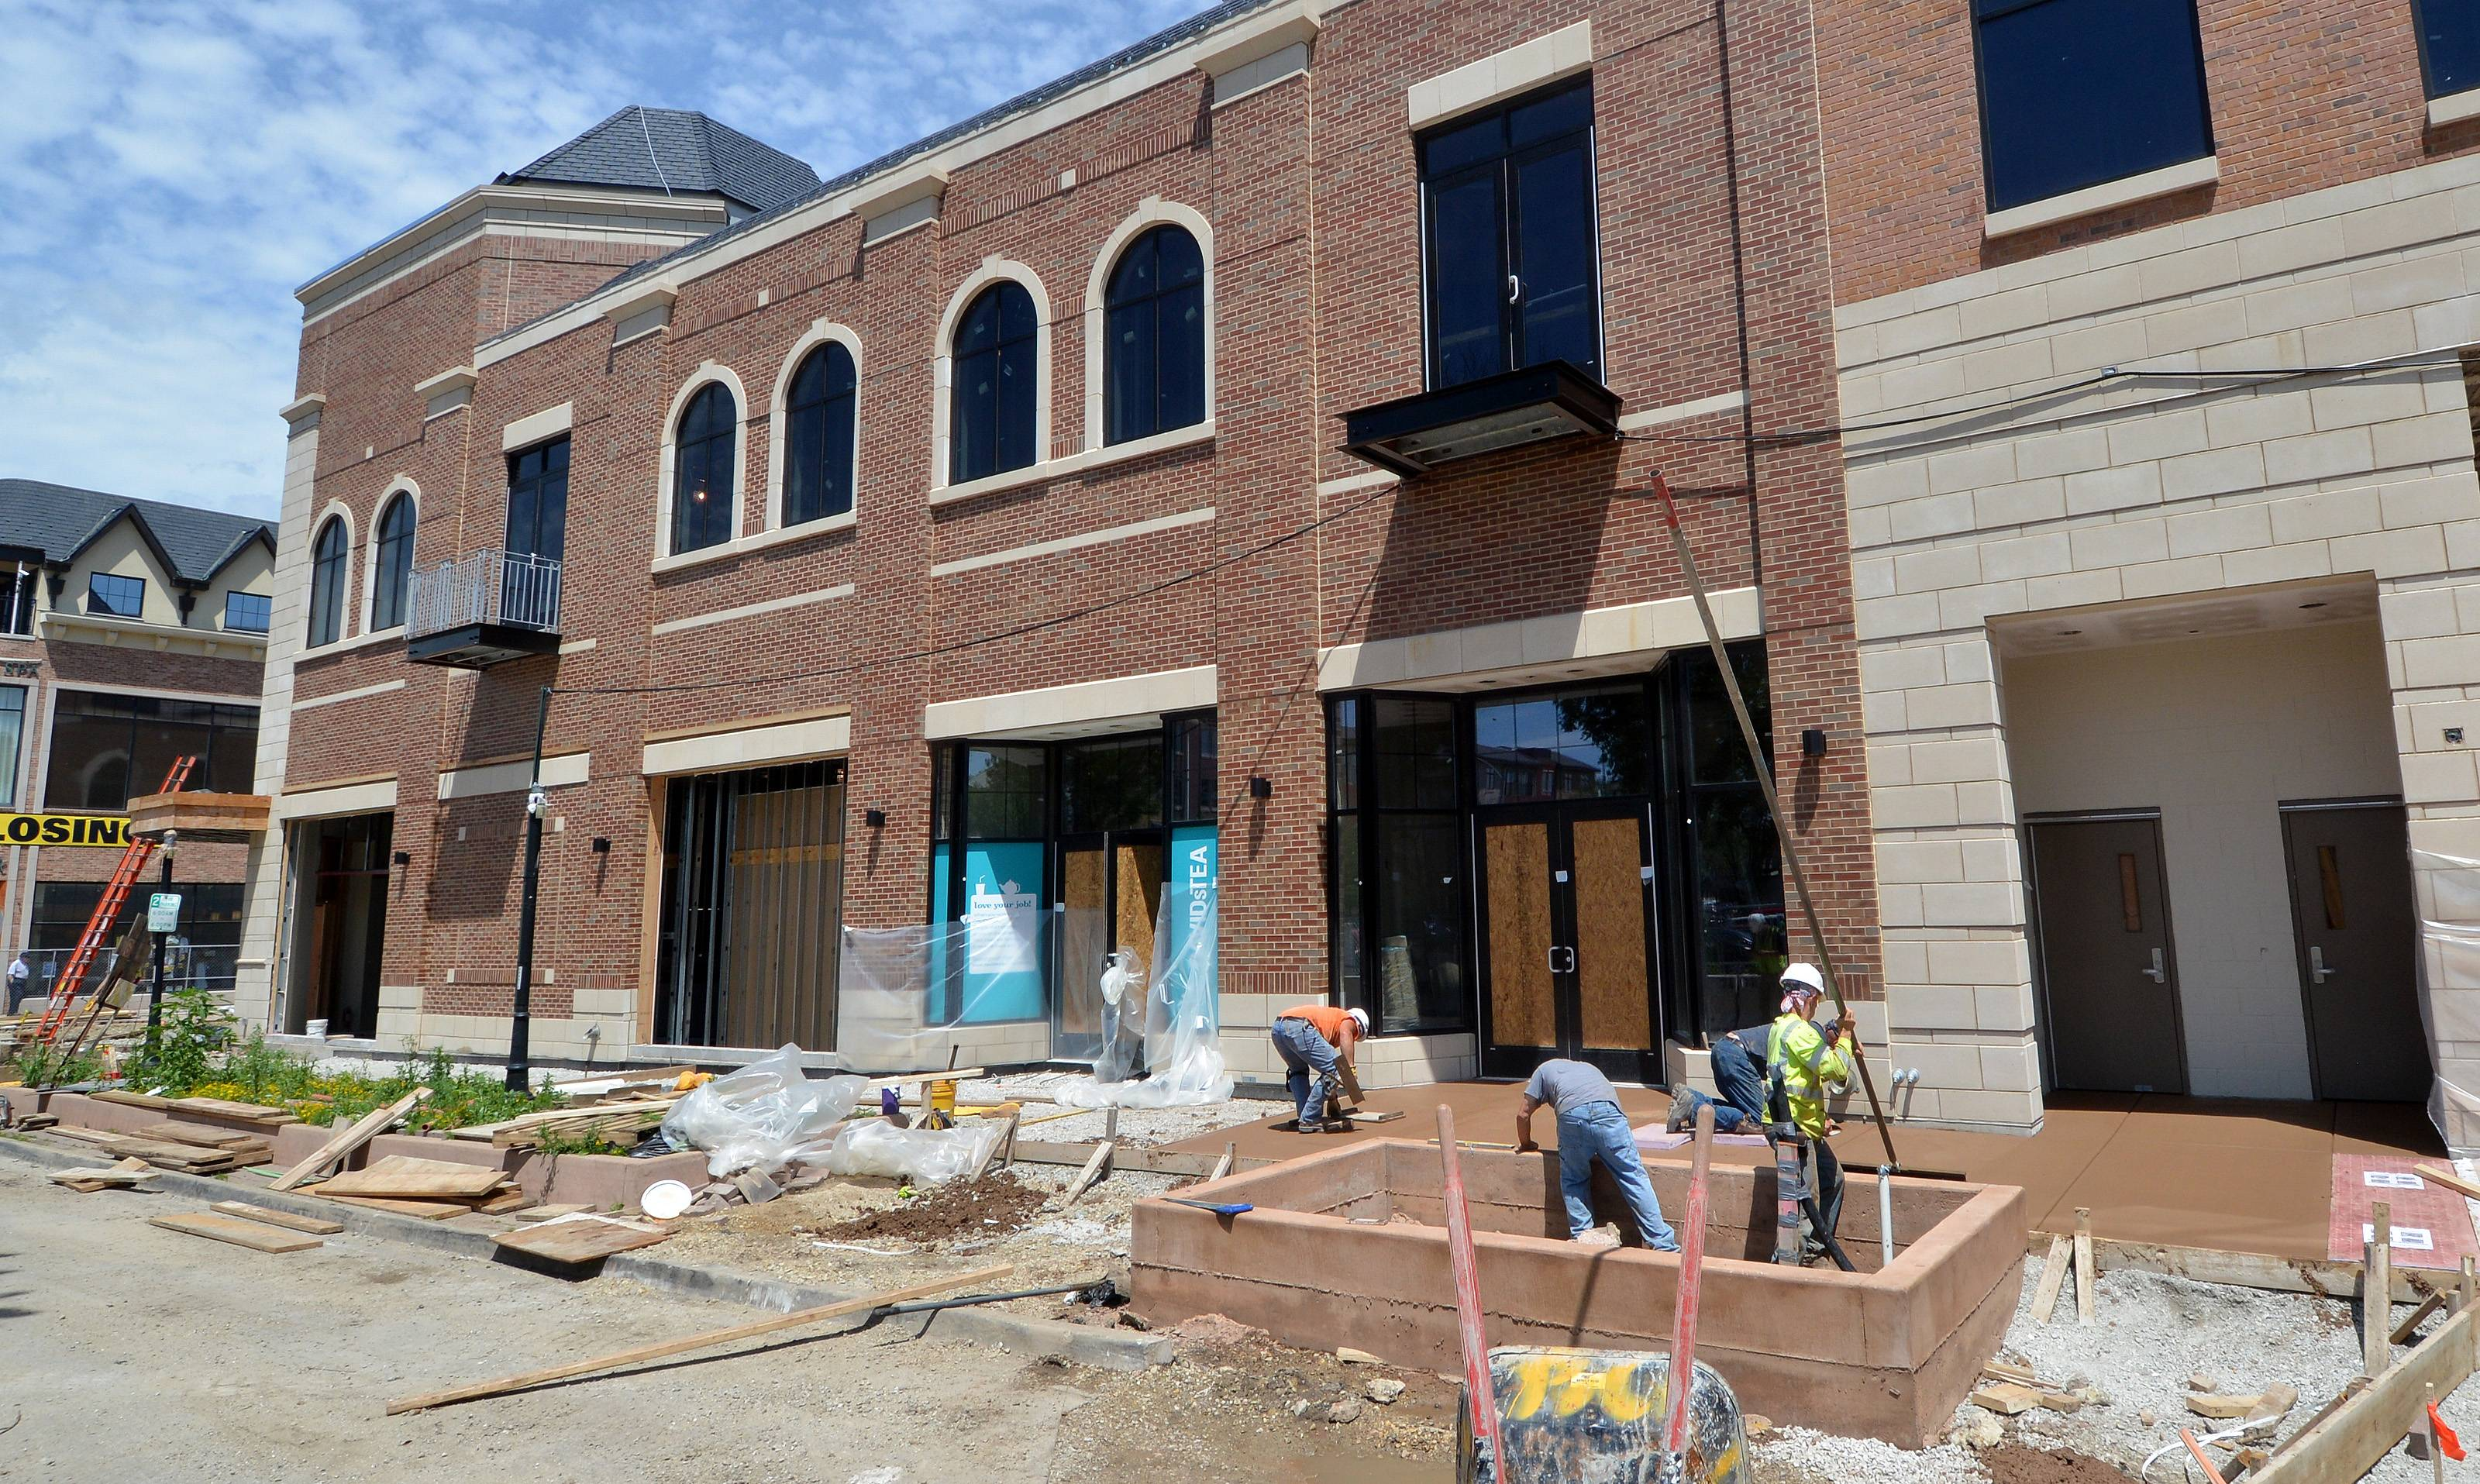 Work on electric infrastructure, sidewalks, streets and a new retail and office building continues in downtown Naperville as Main Street Promenade East prepares to welcome new stores as soon as August.